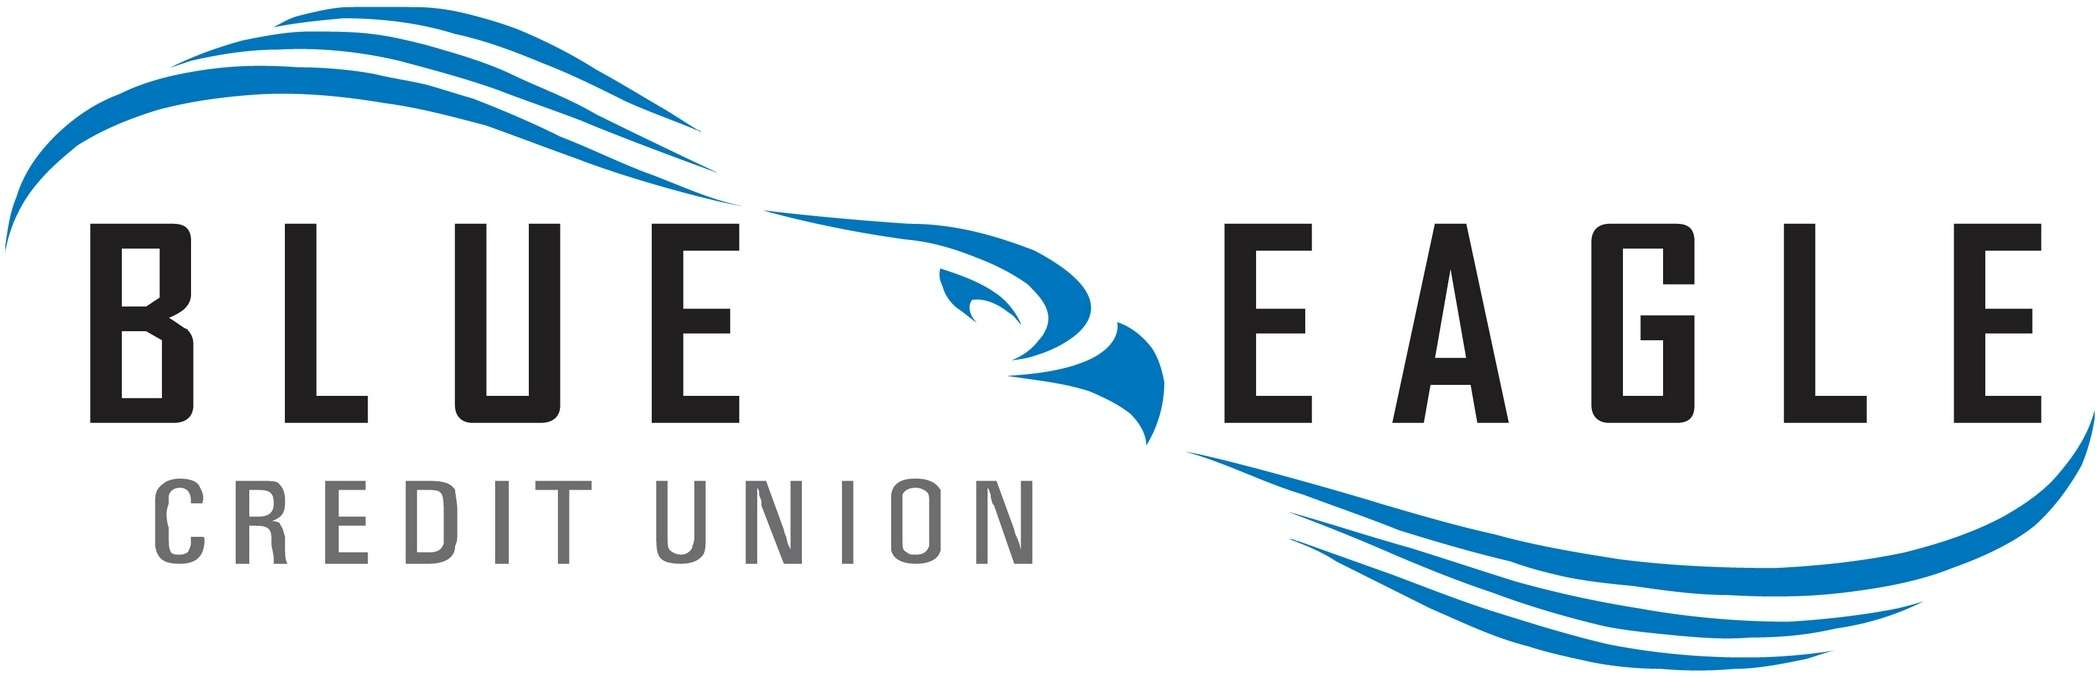 blue-eagle-creditunion-logo